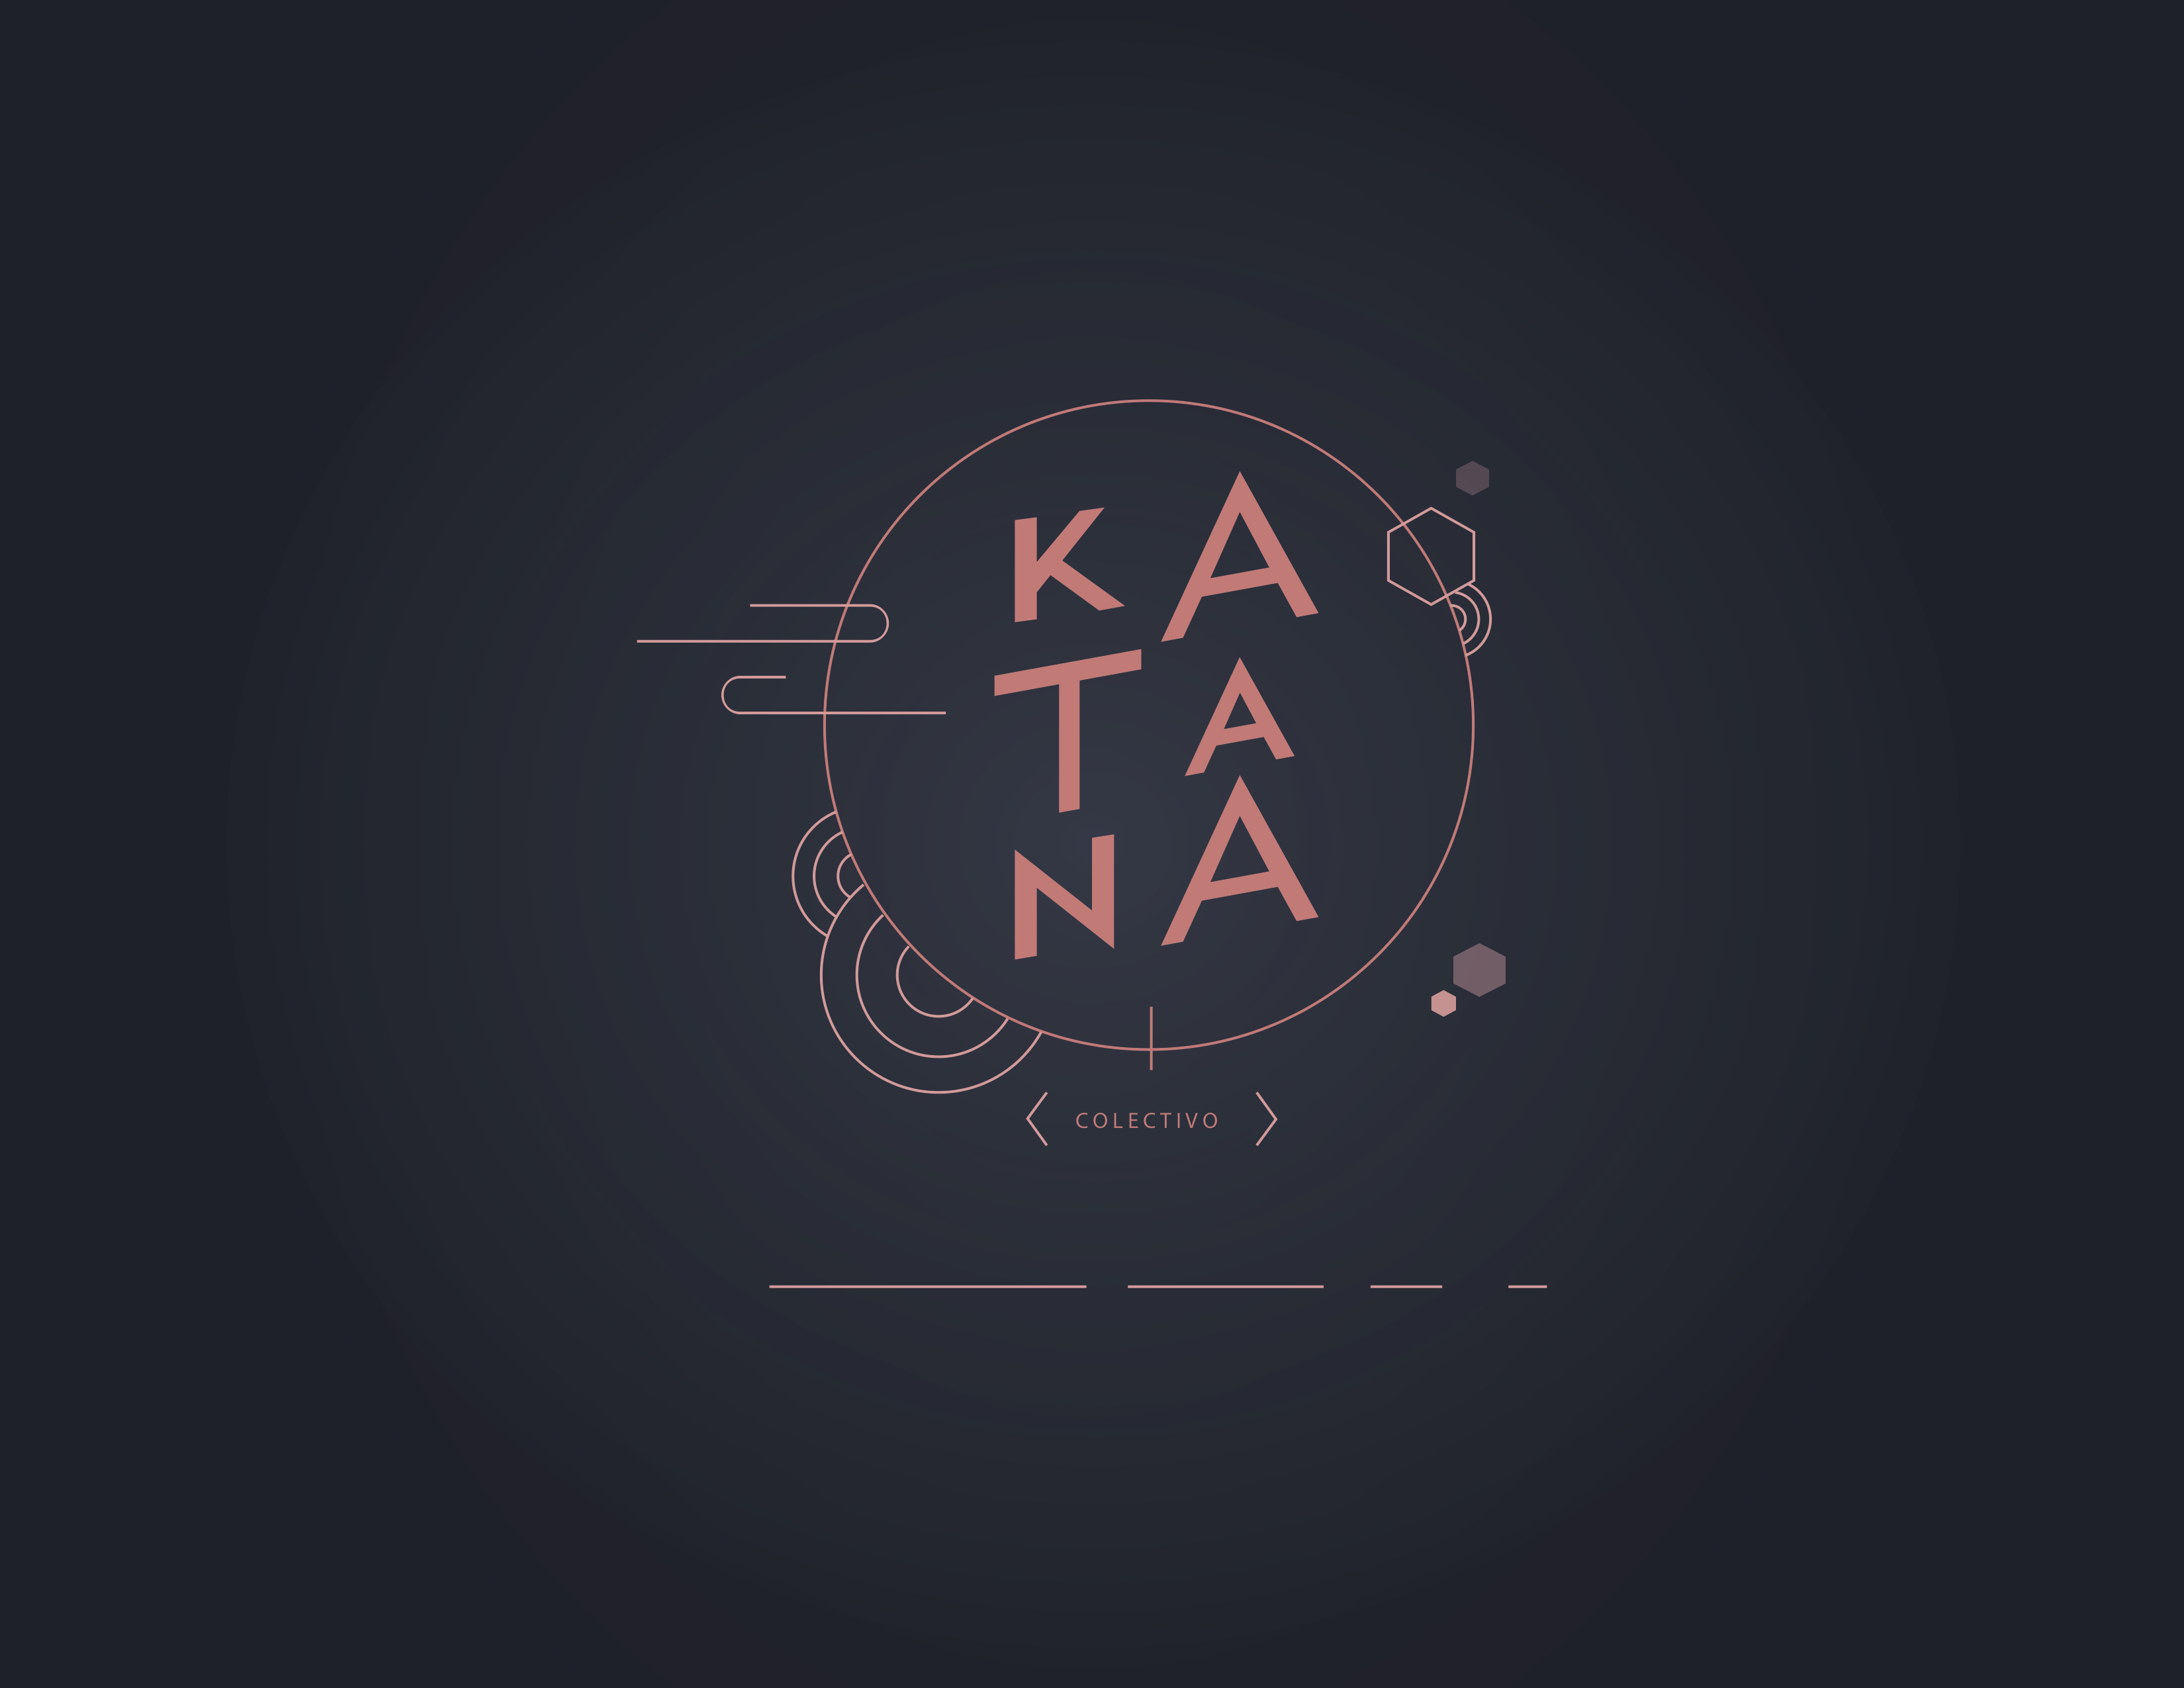 Katana Colectivo - film, video and animation production